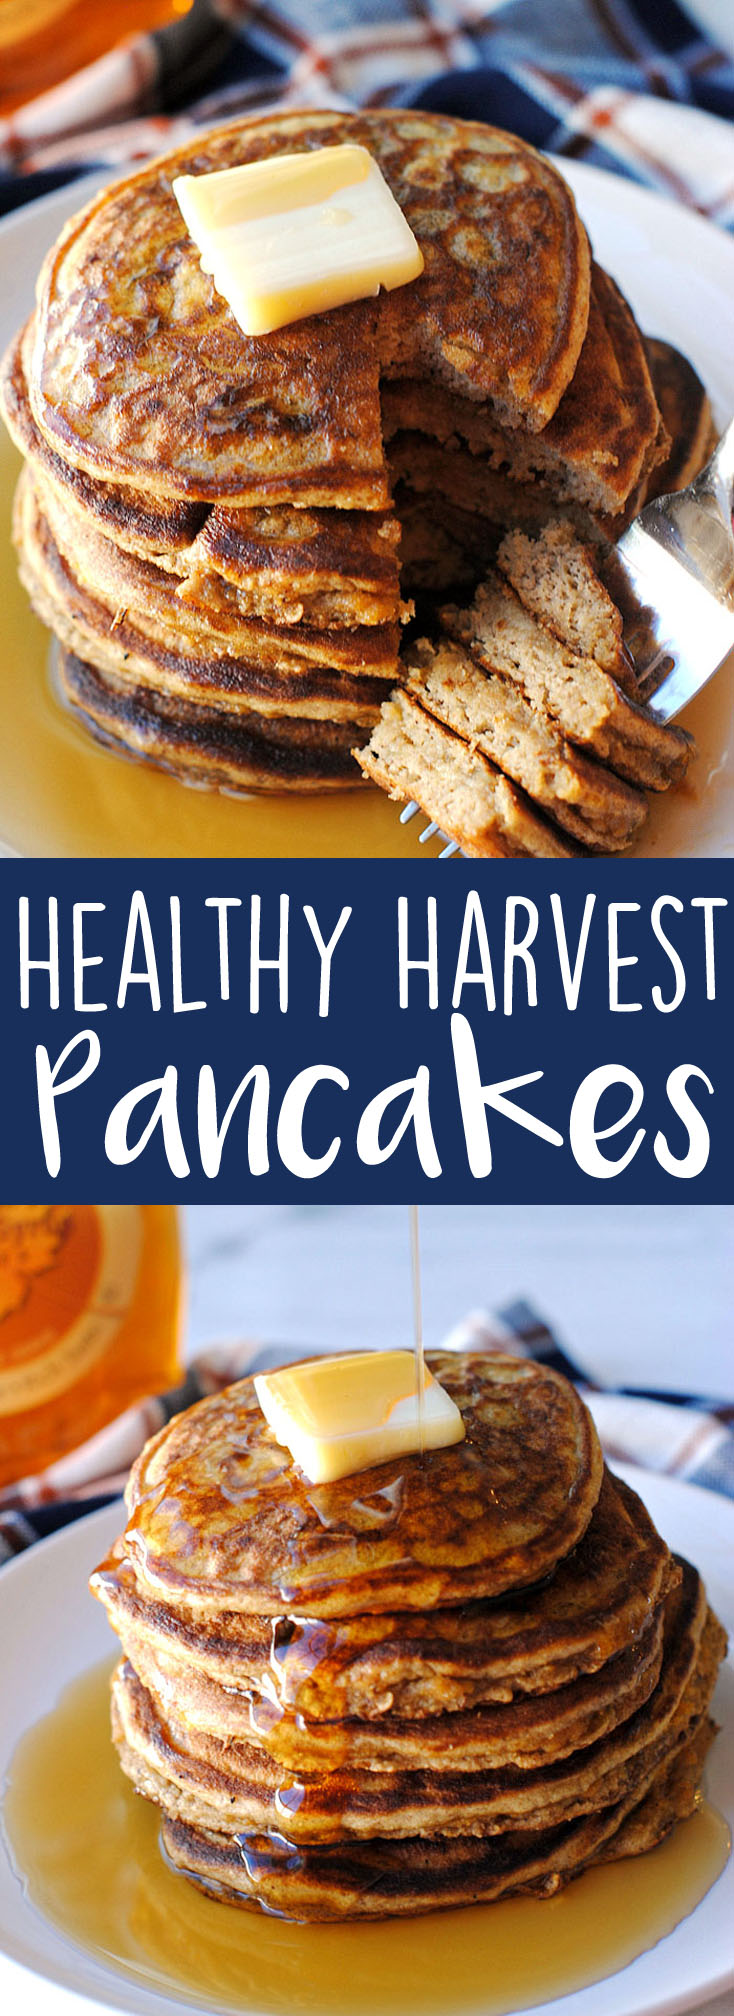 Healthy Harvest Pancakes - made with only eggs, banana and a little almond flour! | Eat Yourself Skinny